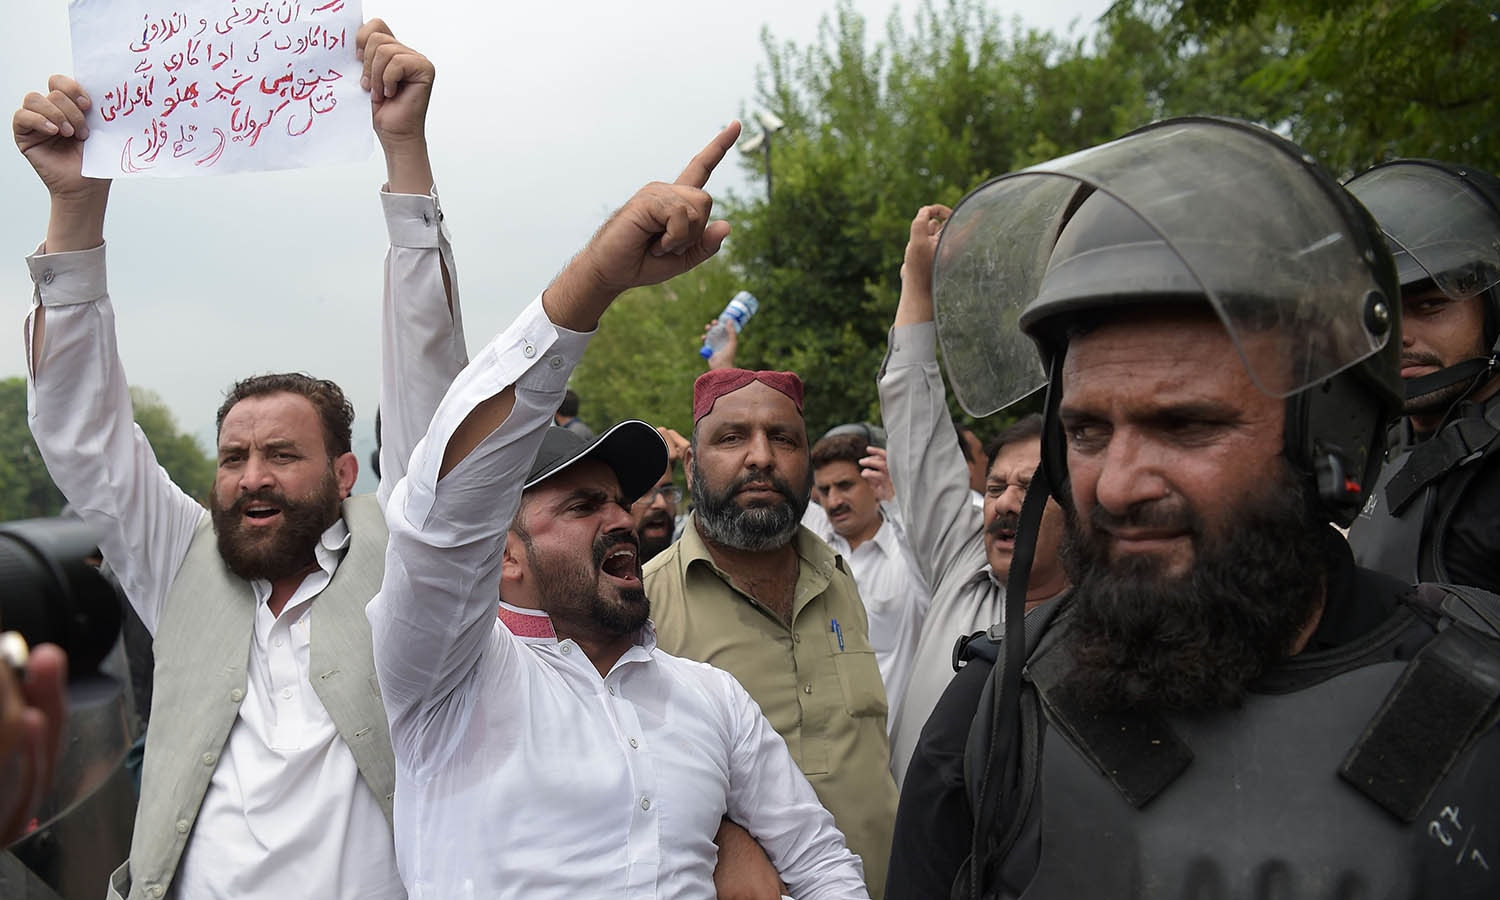 Supporters of ousted PM Nawaz Sharif shout slogans against opposition leader Imran Khan in Islamabad. —AFP